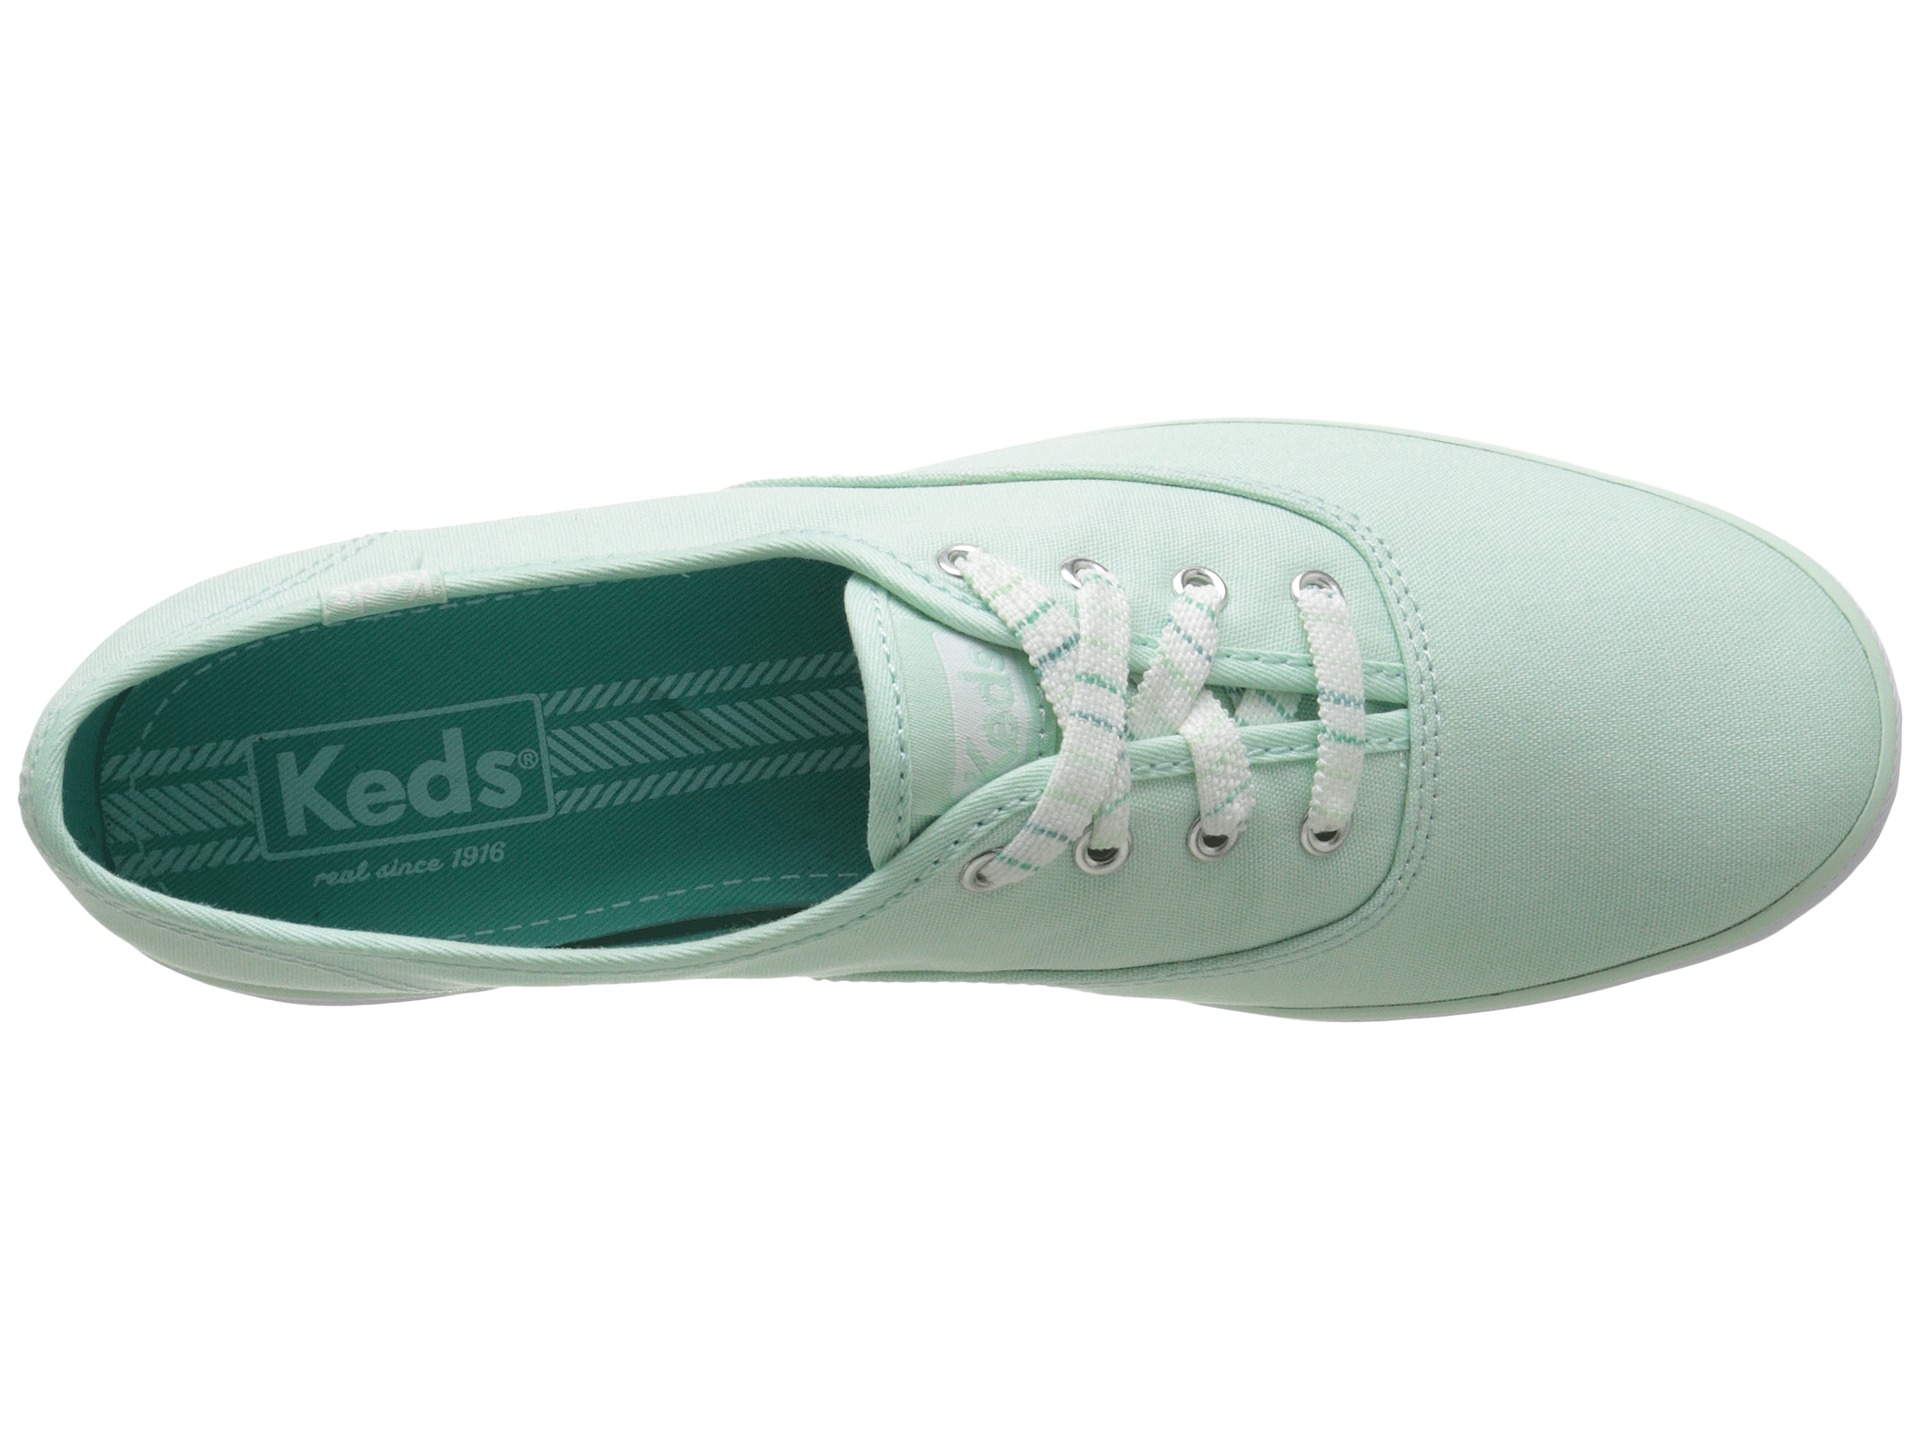 a79197945ac82 Lyst - Keds Champion Seasonal Solids in Green